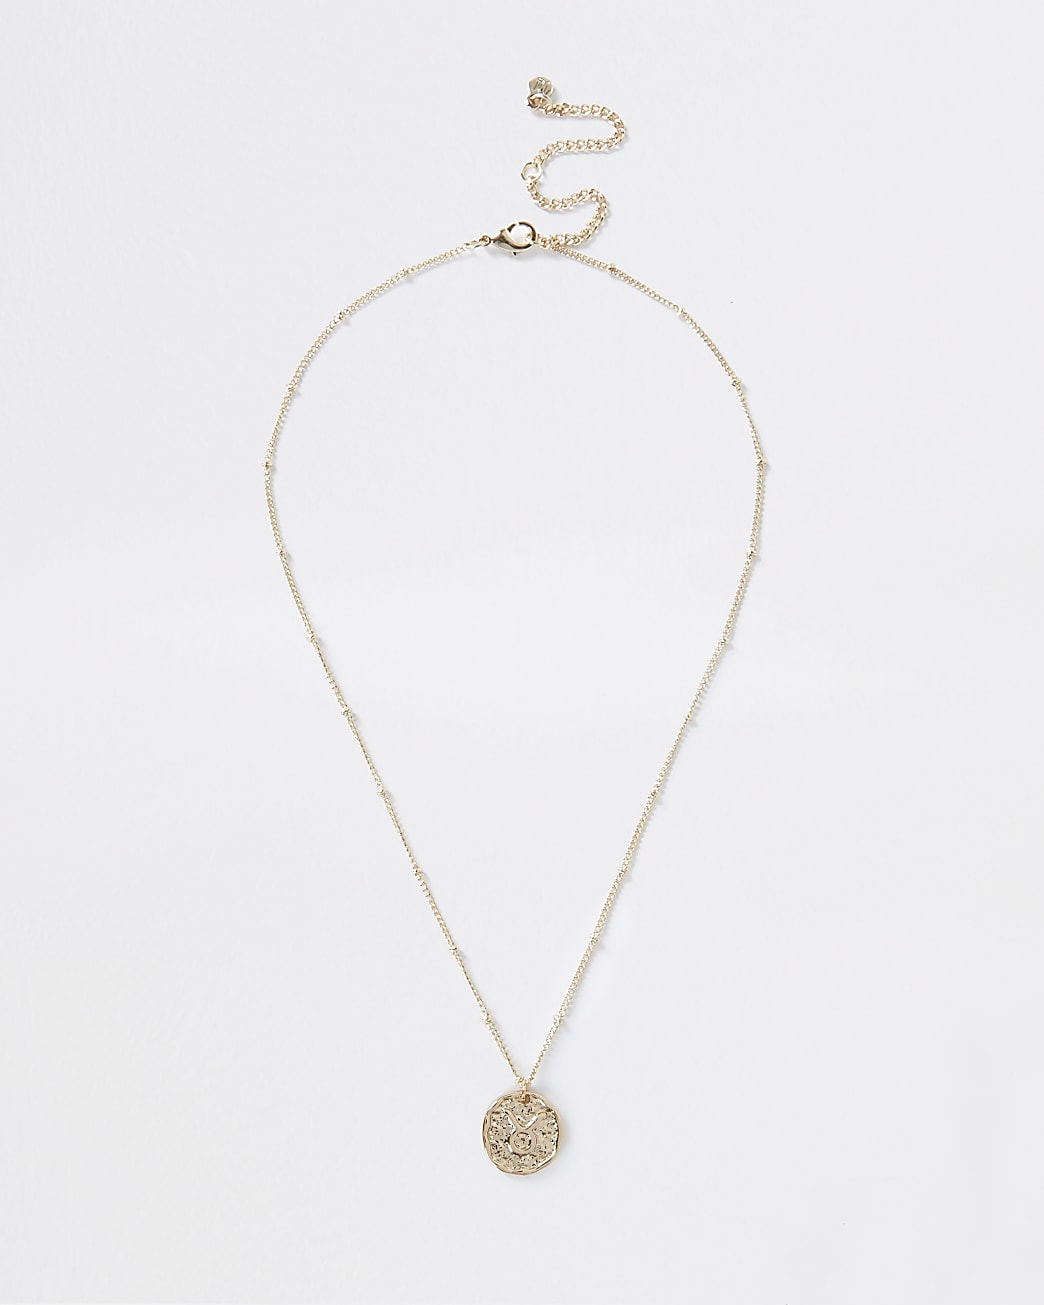 Gold Taurus horoscope coin necklace